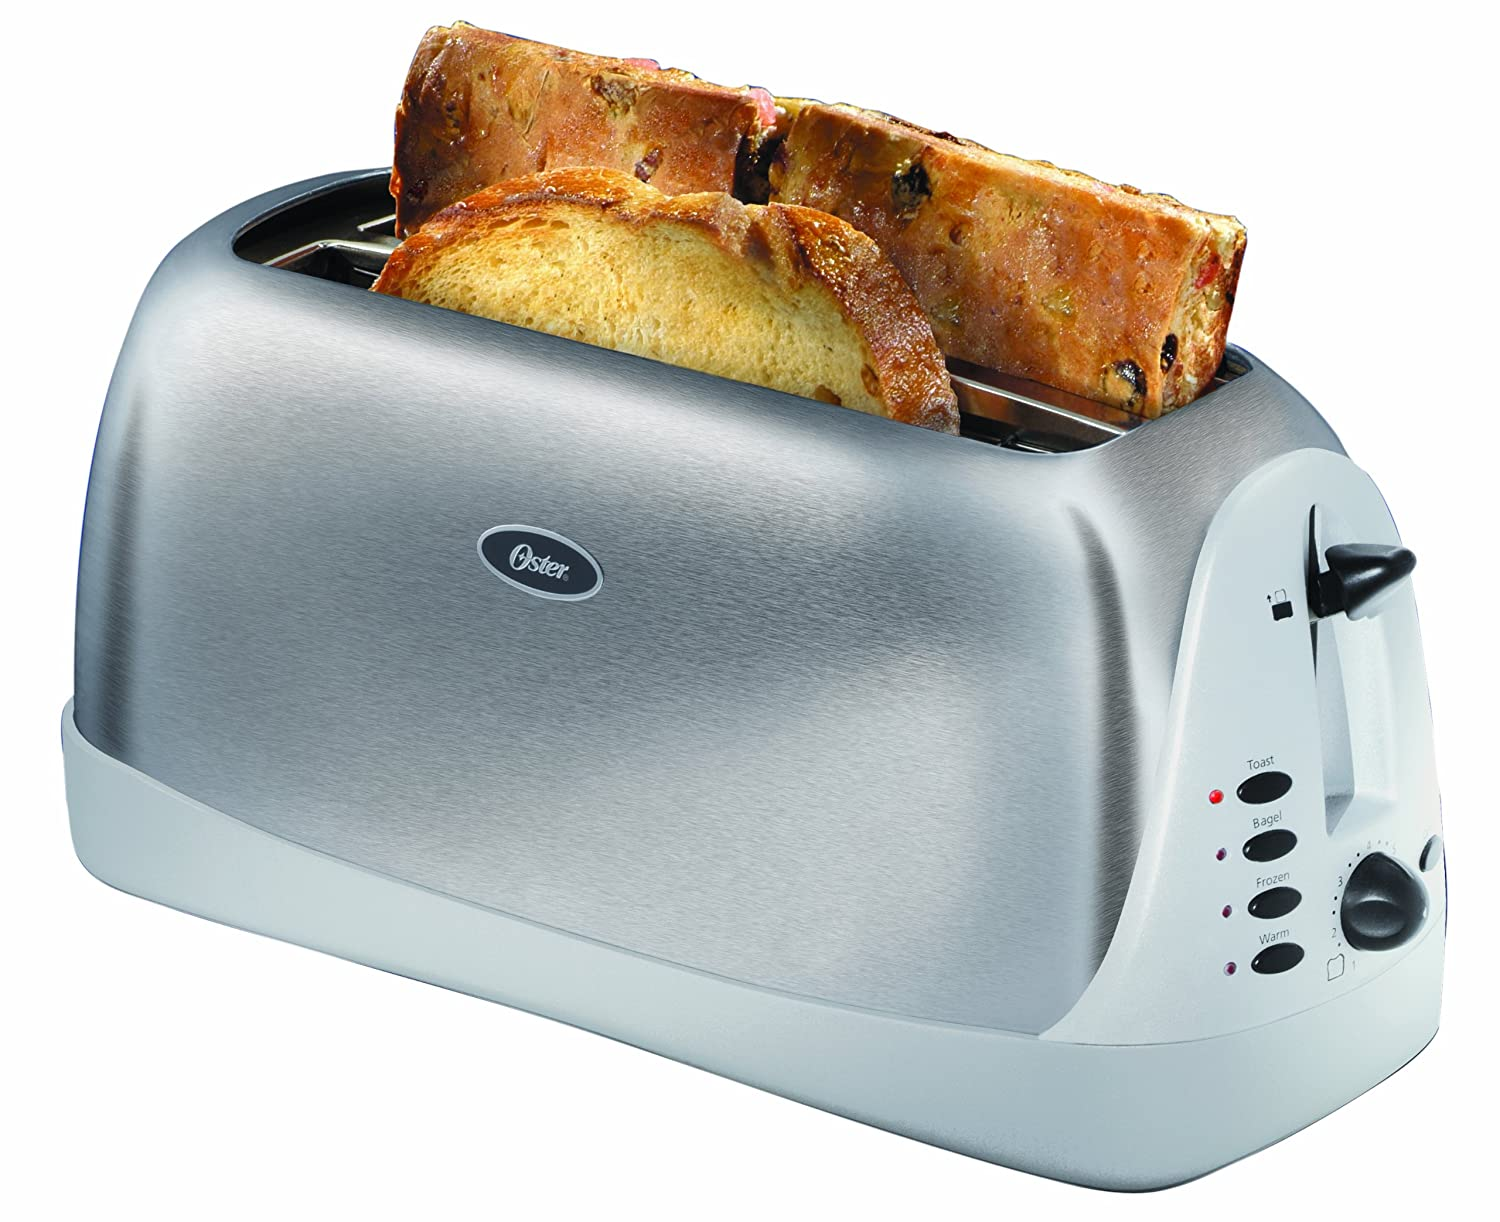 home brushed p stainless toaster the slice toasters krups savoy depot slot